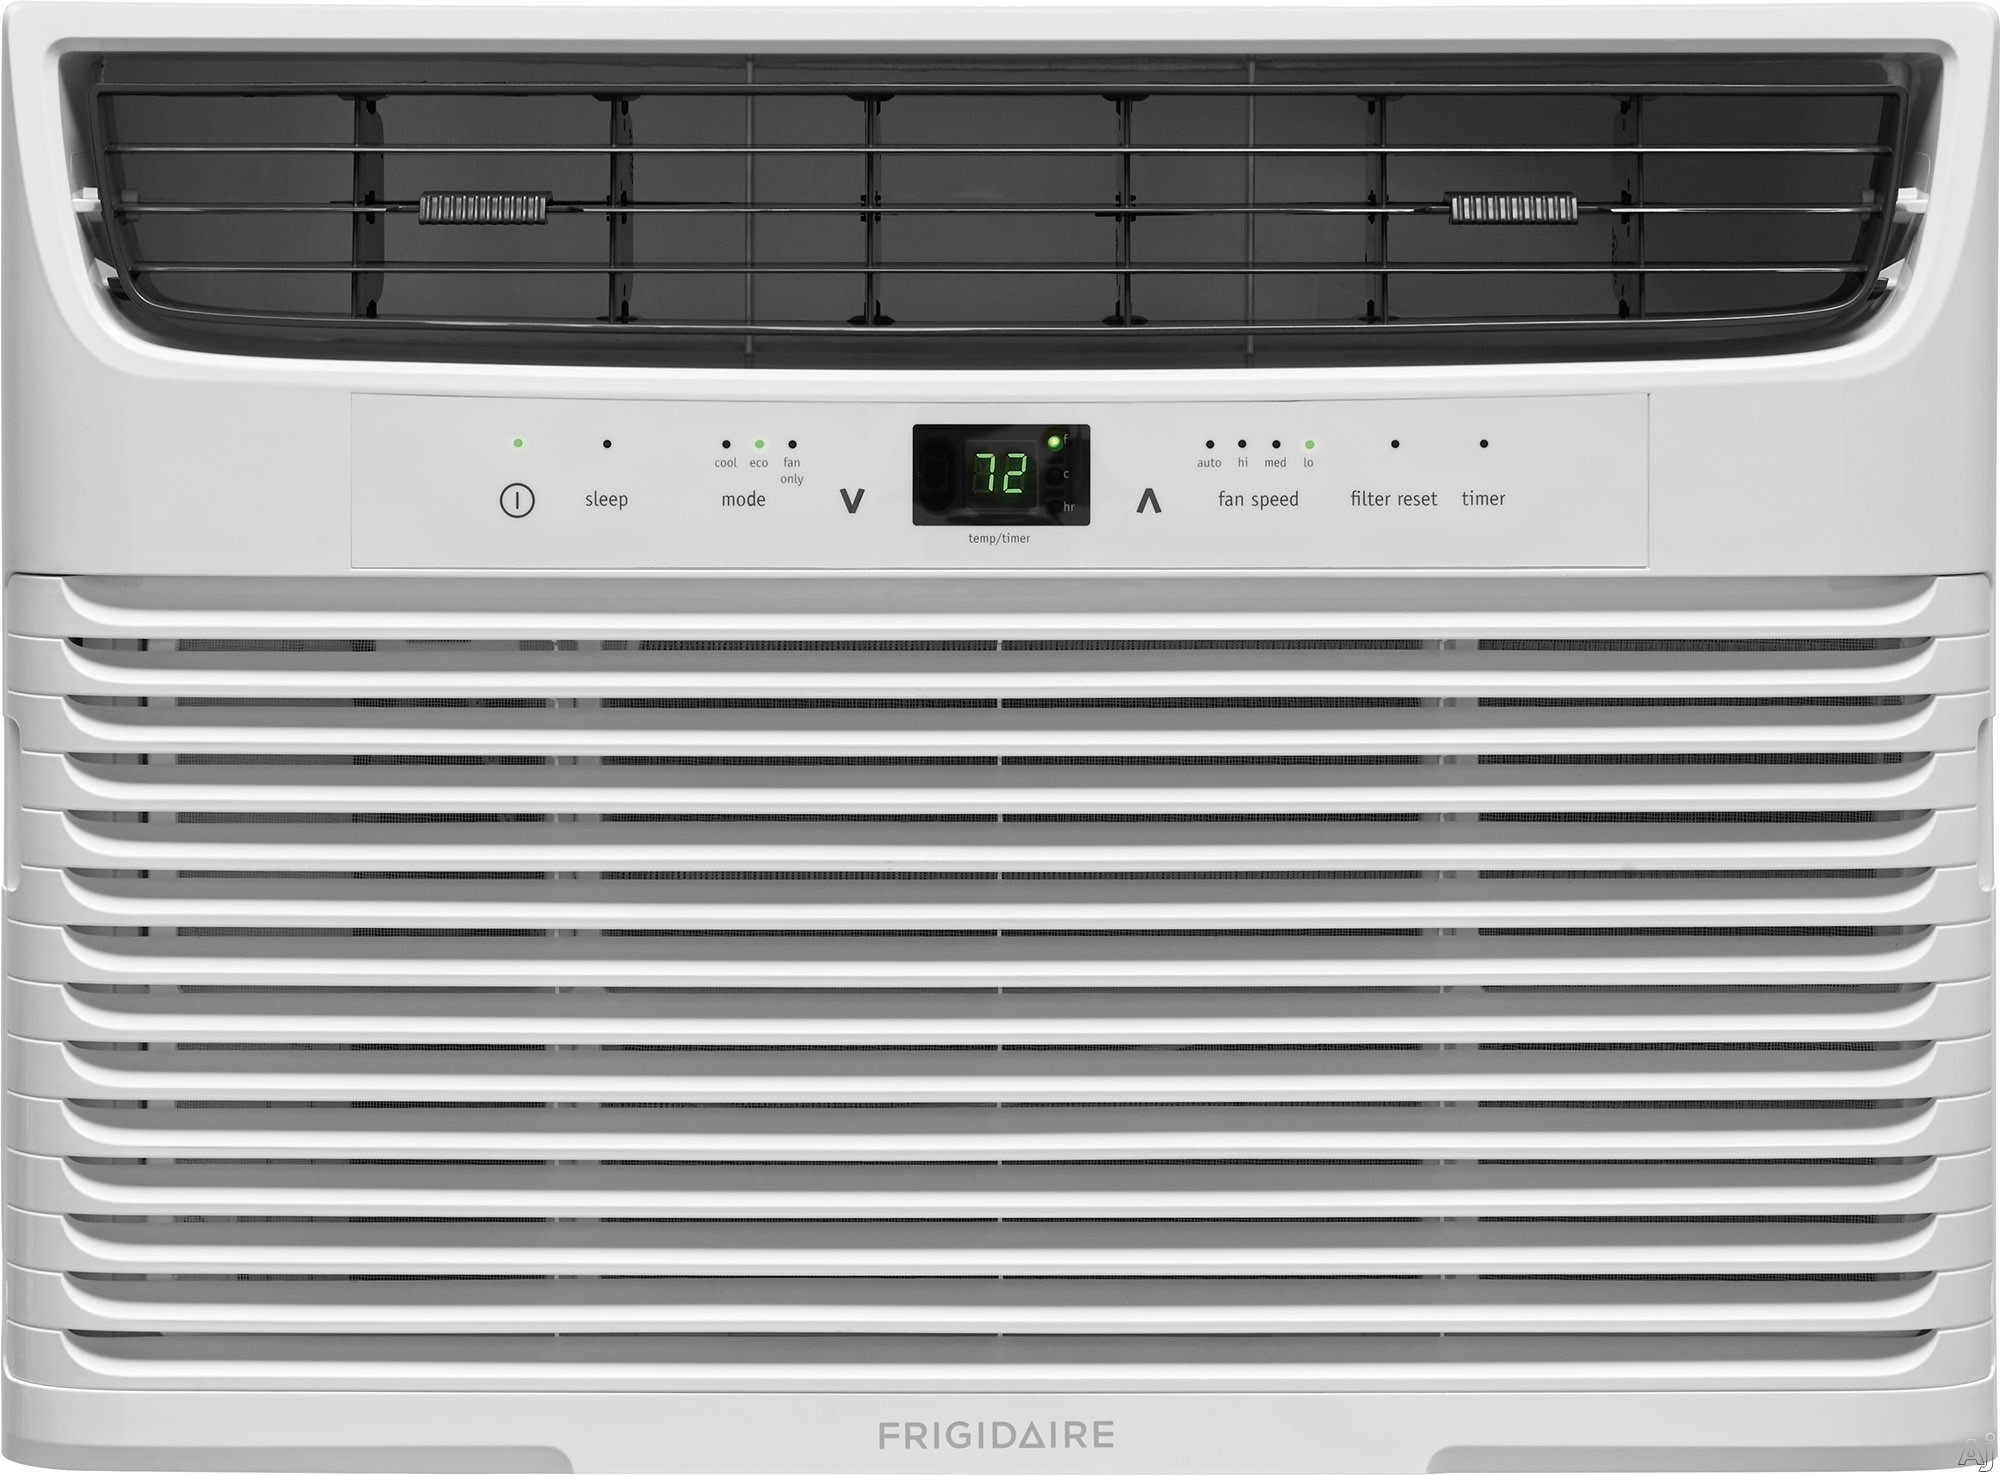 Frigidaire FFRA1022U1 10,000 BTU Room Air Conditioner with Effortless™ Temperature Control, Programmable 24-Hour Timer, Effortless™ Clean Filter, Clean Filter Alert and SpaceWise® Adjus